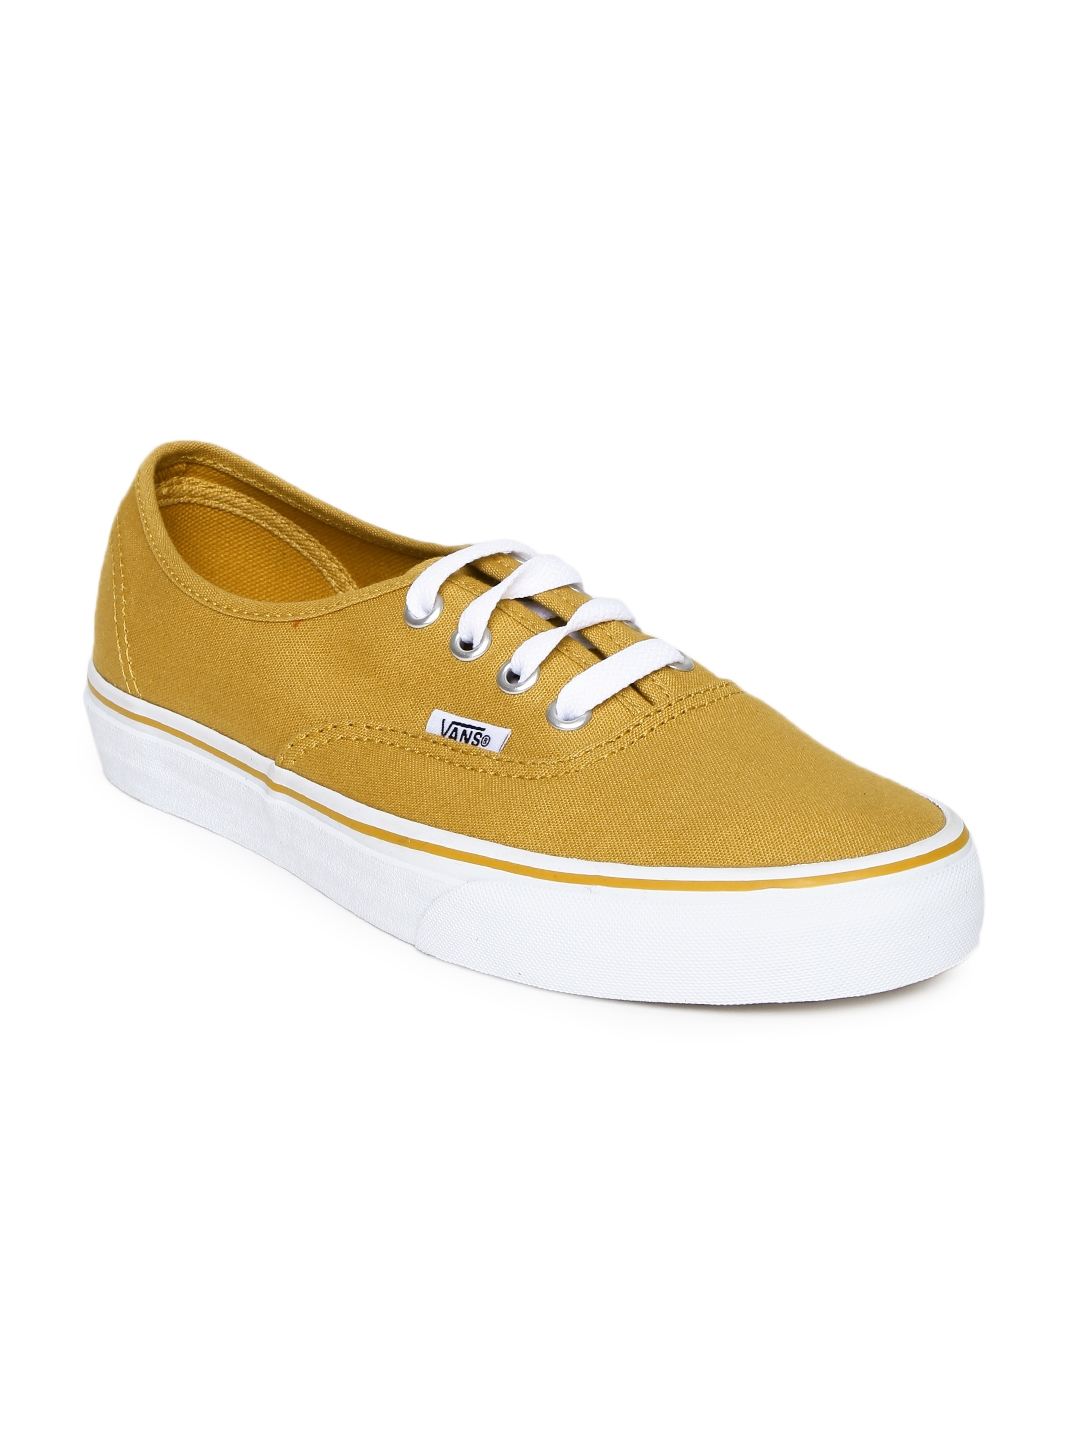 2170691648f Buy Vans Unisex Mustard Yellow Authentic Casual Shoes - Casual Shoes ...